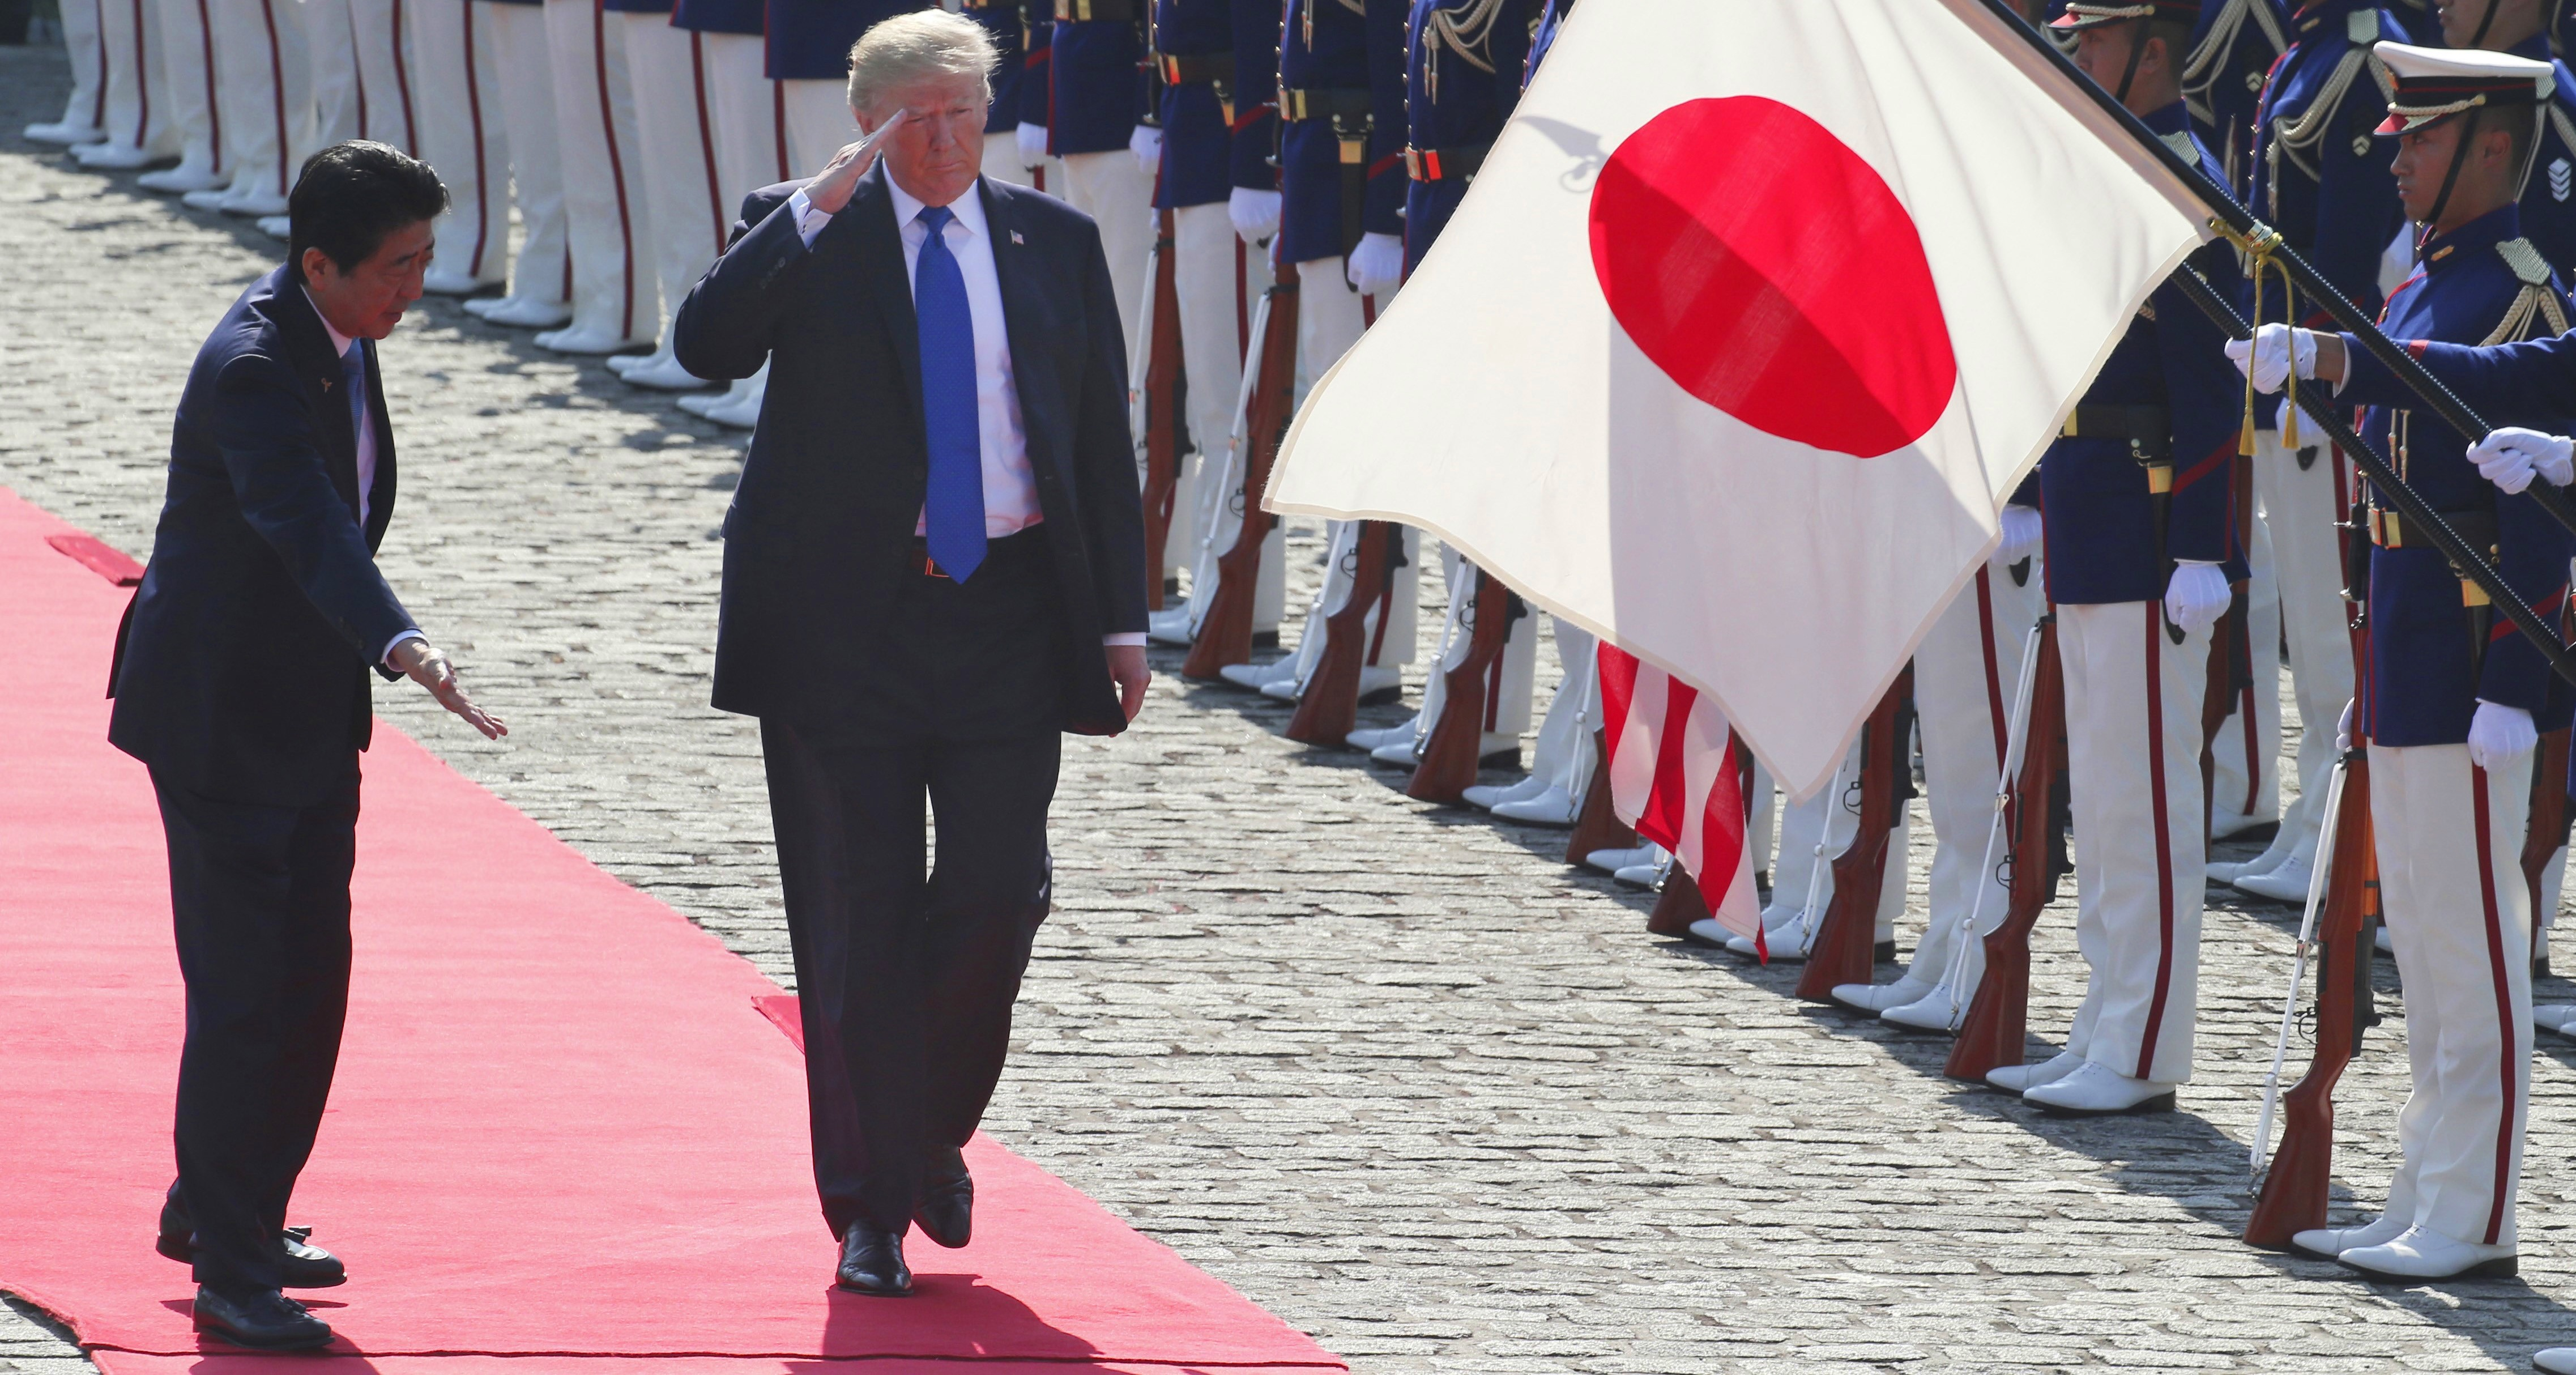 President Donald Trump and Prime Minister Shinzo Abe walk past honour guards at Akasaka Palace in Tokyo on 6 November. (Photo by Koji Sasahara/Getty)